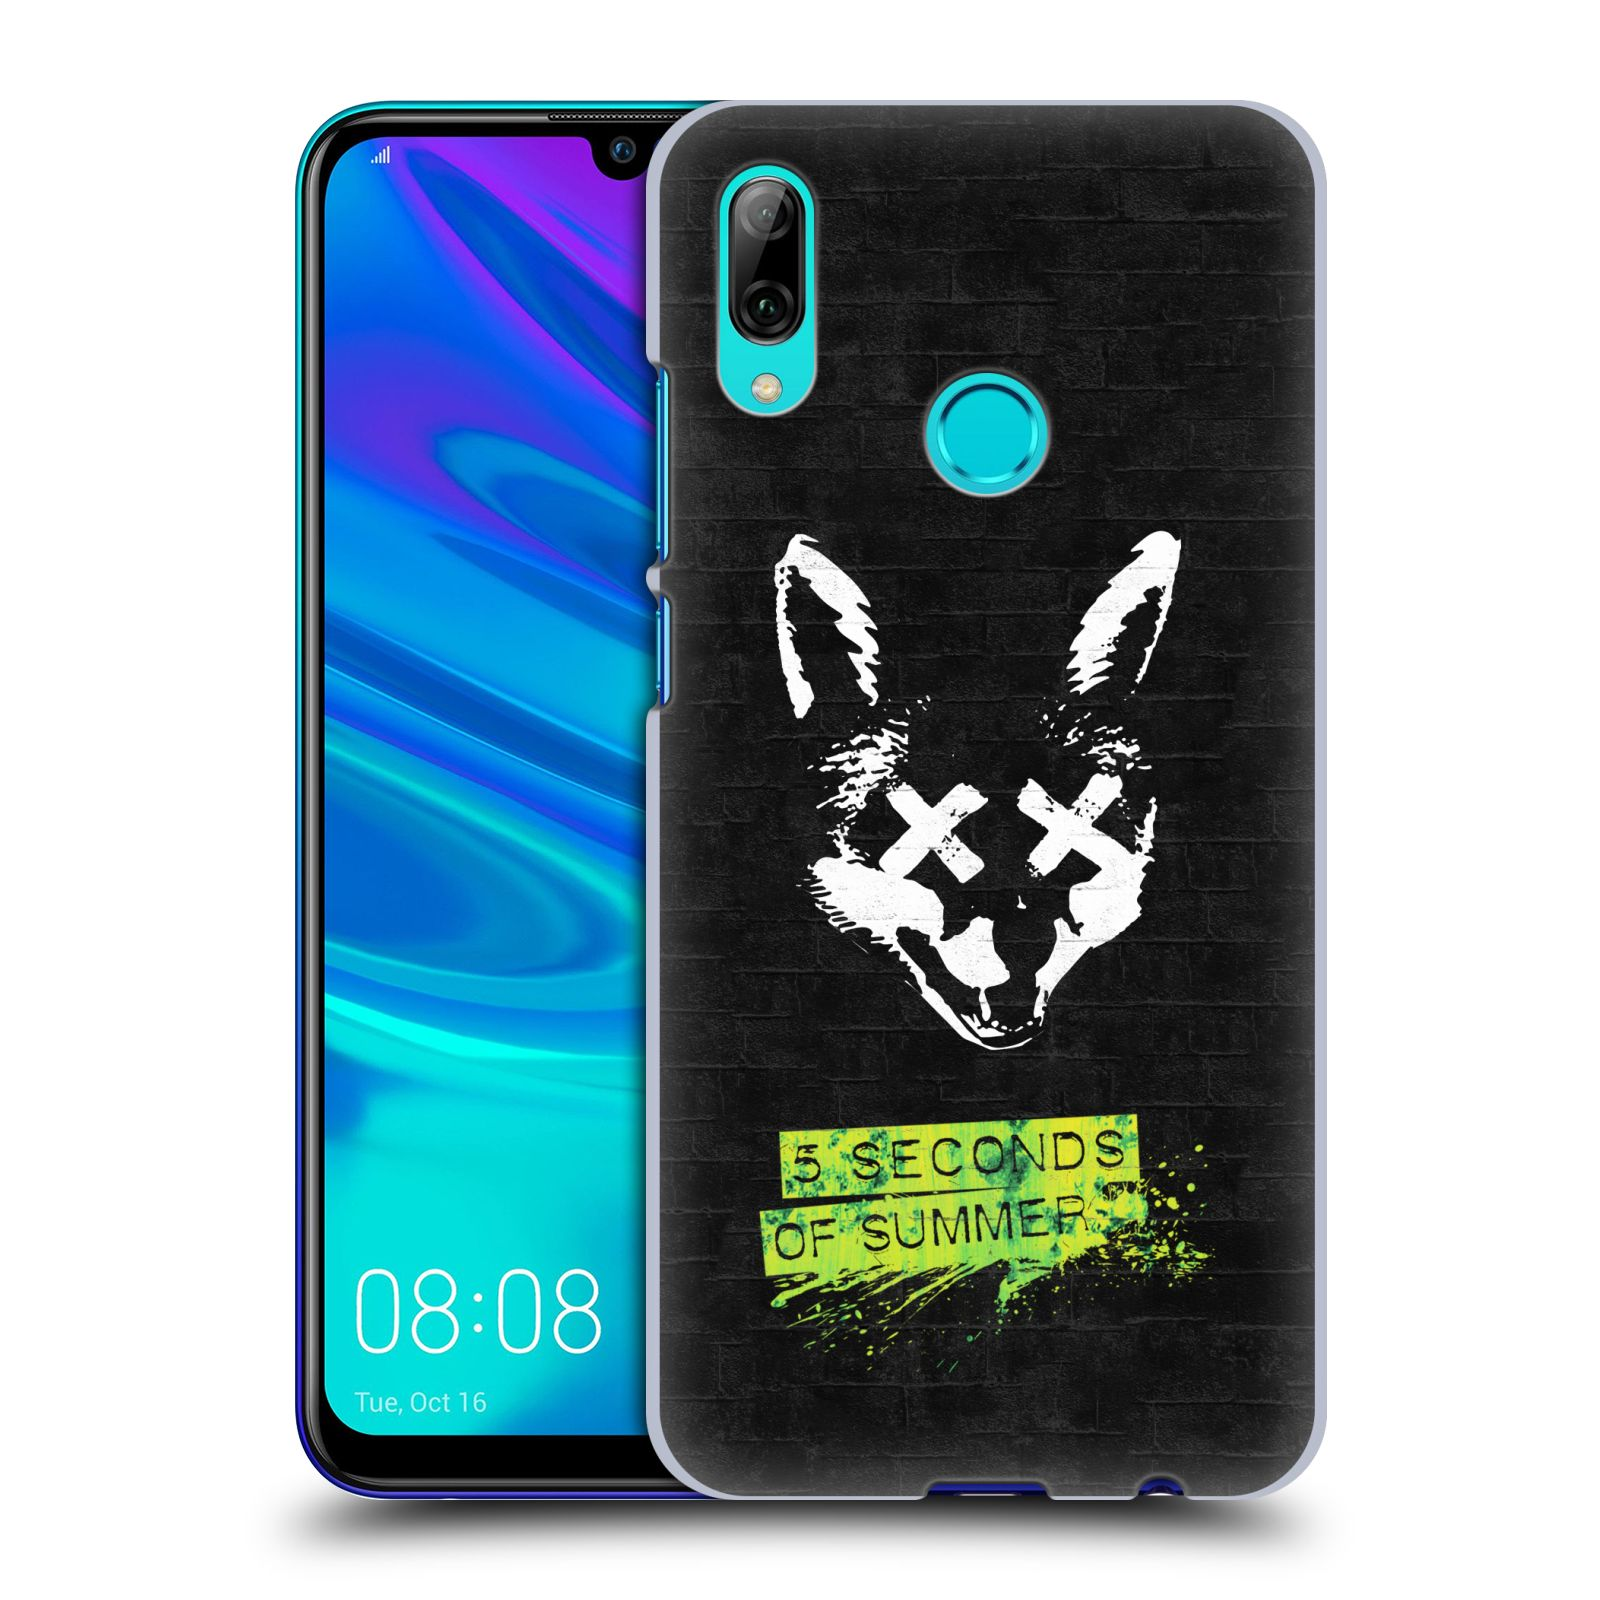 Plastové pouzdro na mobil Huawei P Smart (2019) - Head Case - 5 Seconds of Summer - Fox